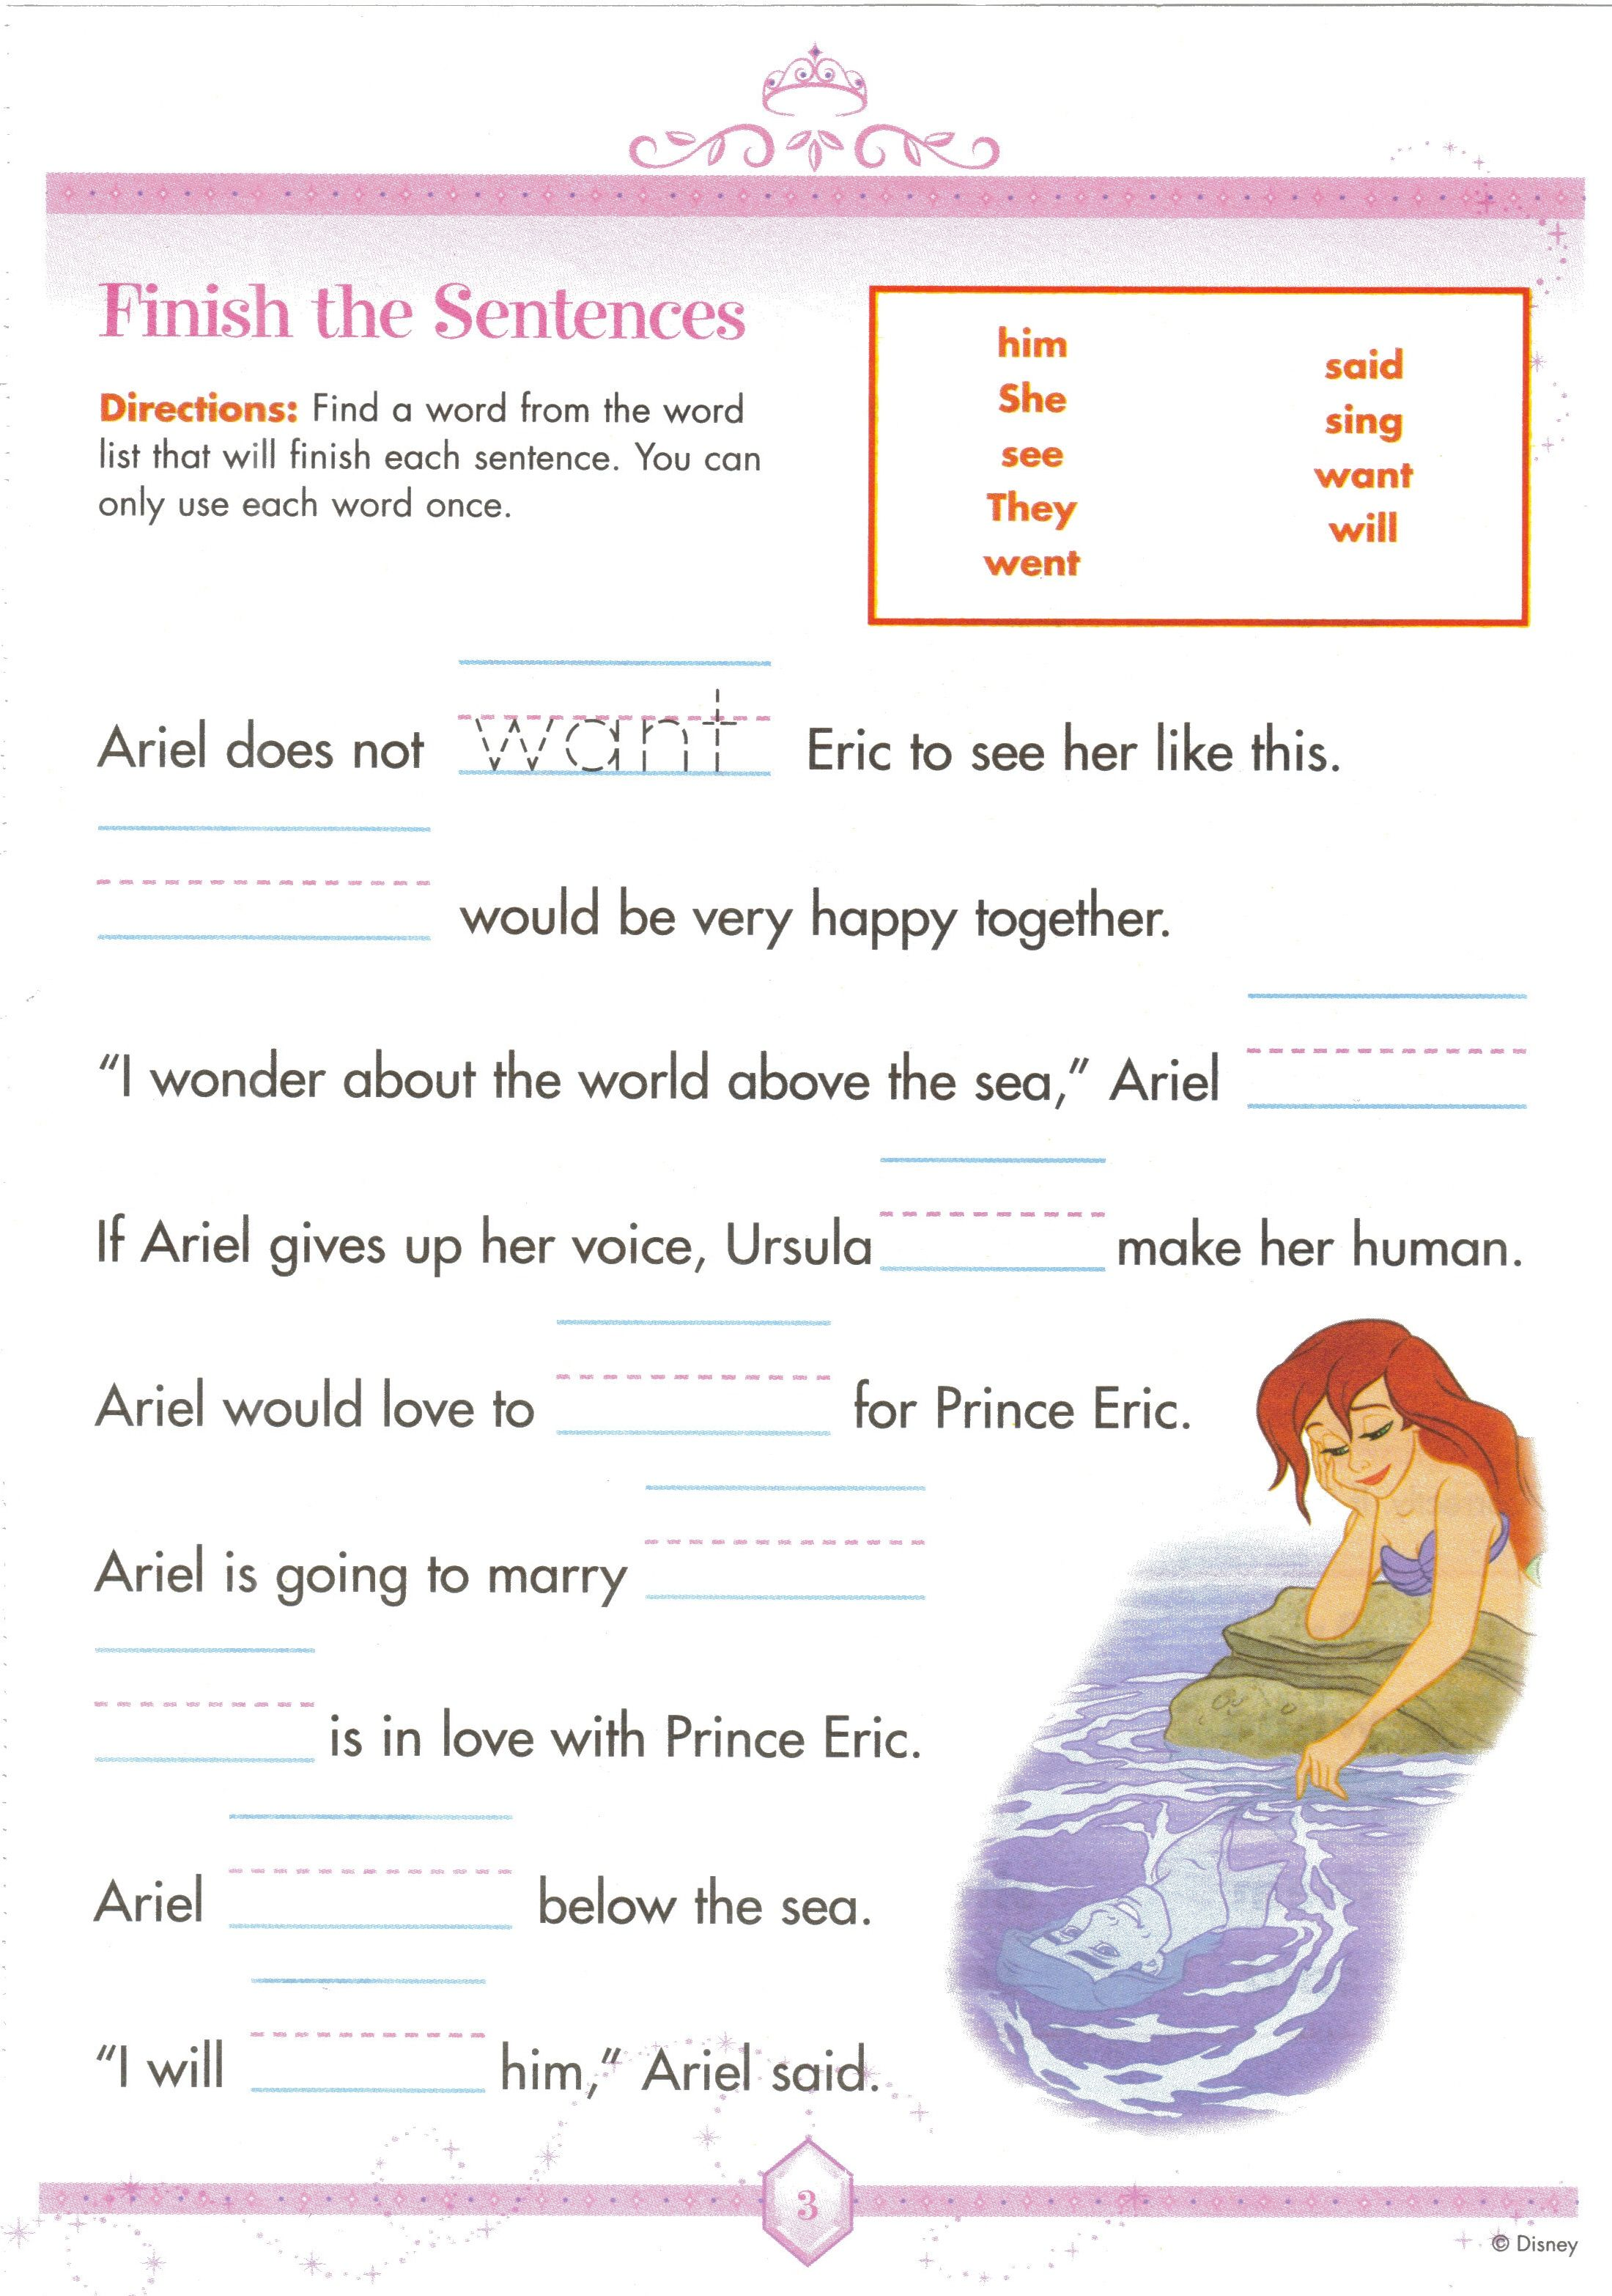 Weirdmailus  Pretty  Images About Worksheets On Pinterest  Fun Facts For Kids  With Foxy  Images About Worksheets On Pinterest  Fun Facts For Kids Earth Day Worksheets And Jungles With Astonishing Urinary System Worksheet Also Cognitive Triangle Worksheet In Addition Greek Mythology Worksheets And Dr Seuss Math Worksheets As Well As Matter And Change Worksheet Additionally Powers Of Ten Worksheet From Pinterestcom With Weirdmailus  Foxy  Images About Worksheets On Pinterest  Fun Facts For Kids  With Astonishing  Images About Worksheets On Pinterest  Fun Facts For Kids Earth Day Worksheets And Jungles And Pretty Urinary System Worksheet Also Cognitive Triangle Worksheet In Addition Greek Mythology Worksheets From Pinterestcom